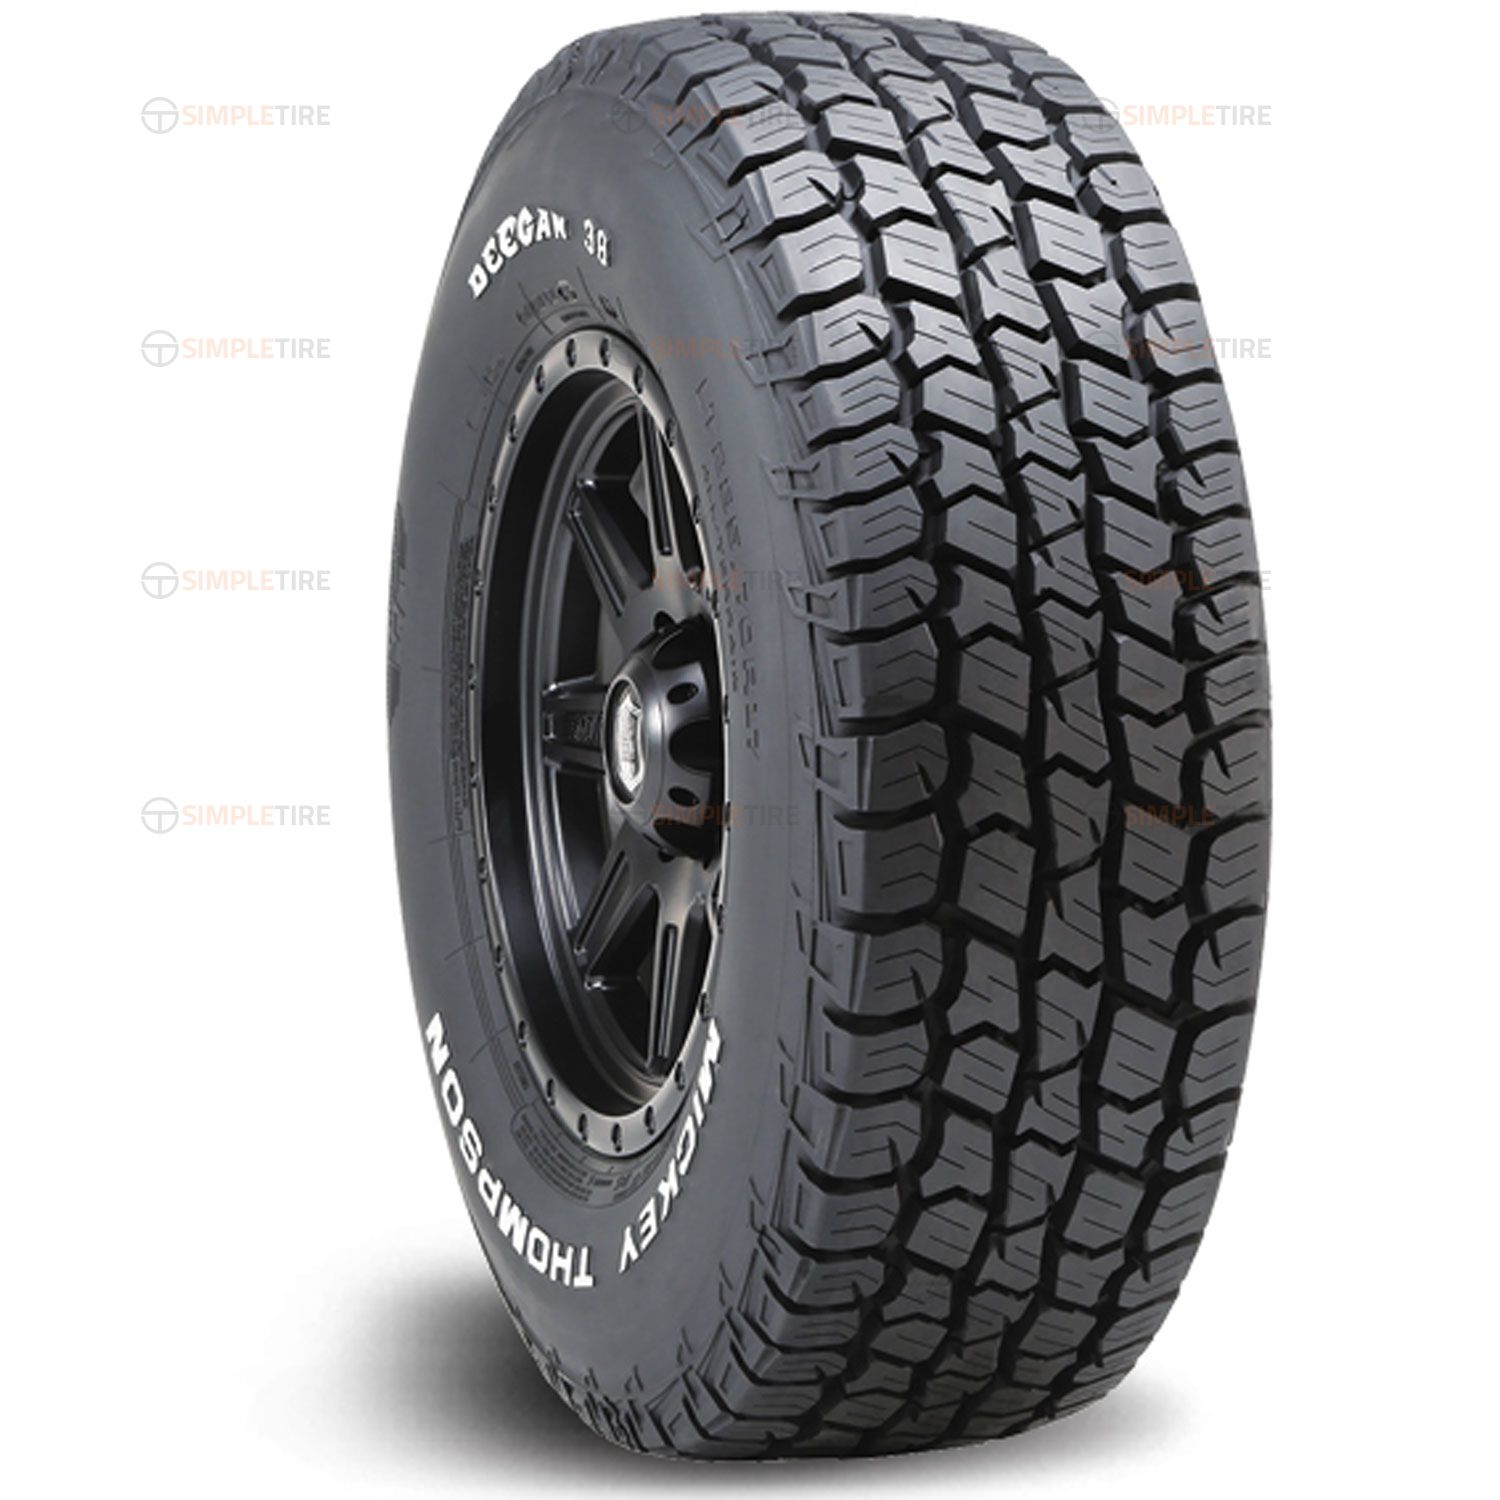 90000029622 LT295/70R18 Deegan 38 A/T Mickey Thompson